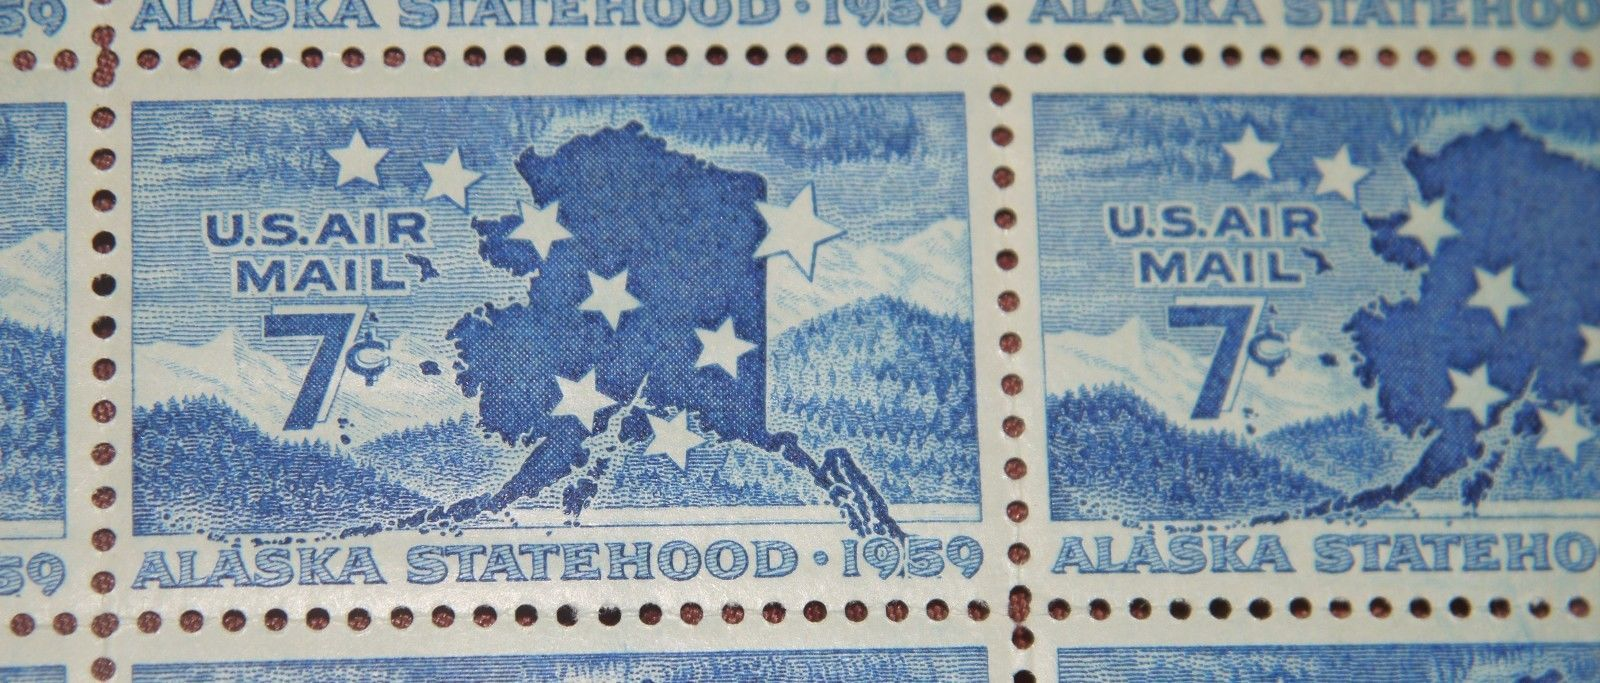 Alaskan Statehood 1959 Commemorative 7 Cent Air Mail Stamps Sheet of 49 MNH